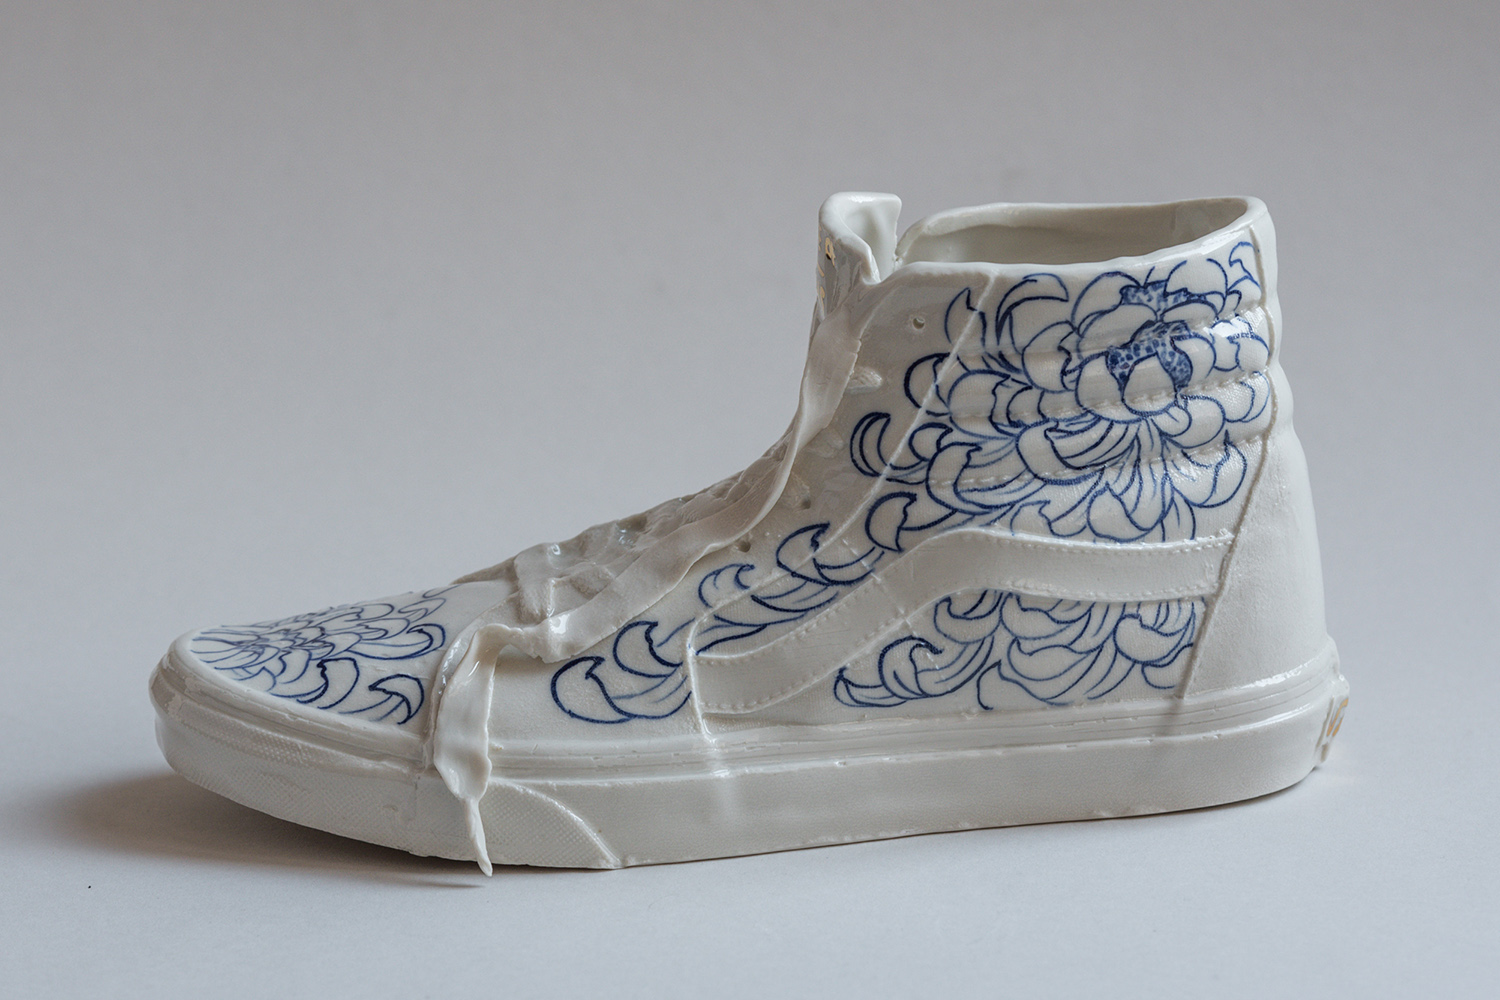 Vans porcelain hand painted ceramic blue chrysanthemum tattoo handmade Berlin art Marta ANtikapratika.jpg